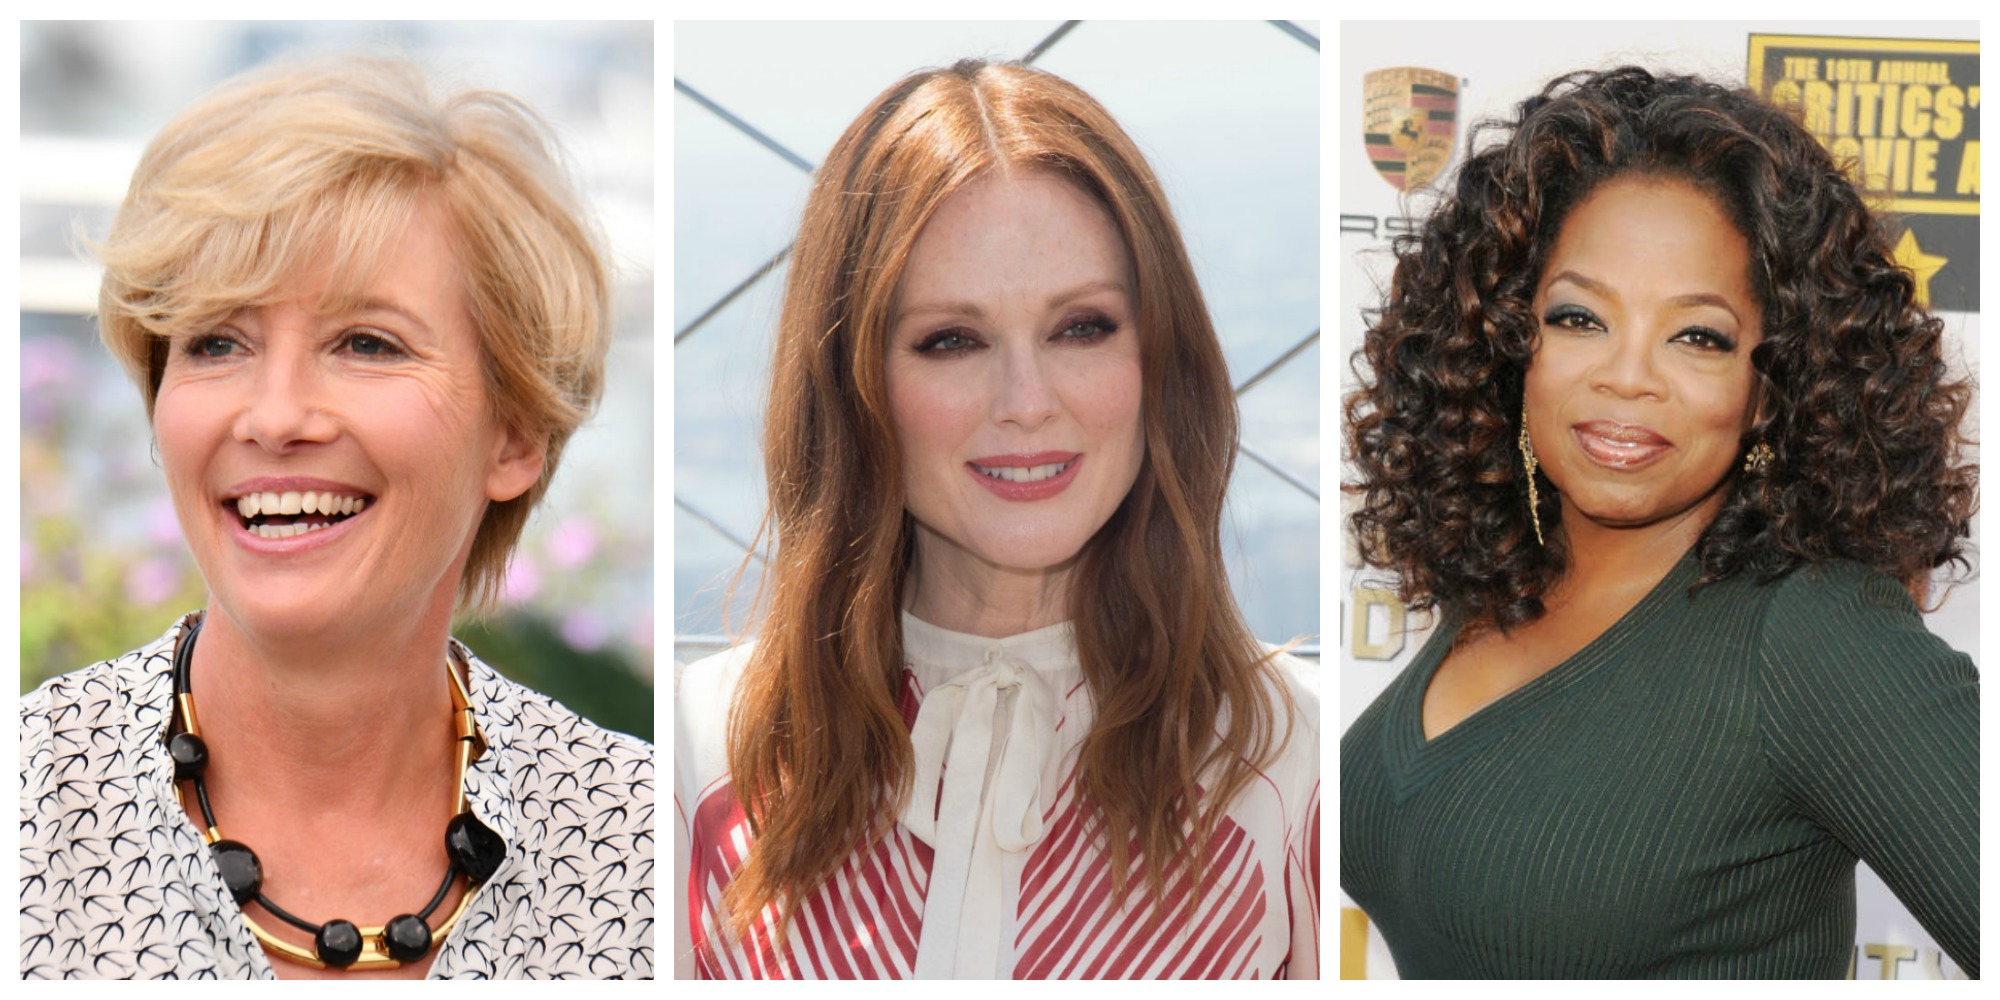 20+ Best Hairstyles For Women Over 50